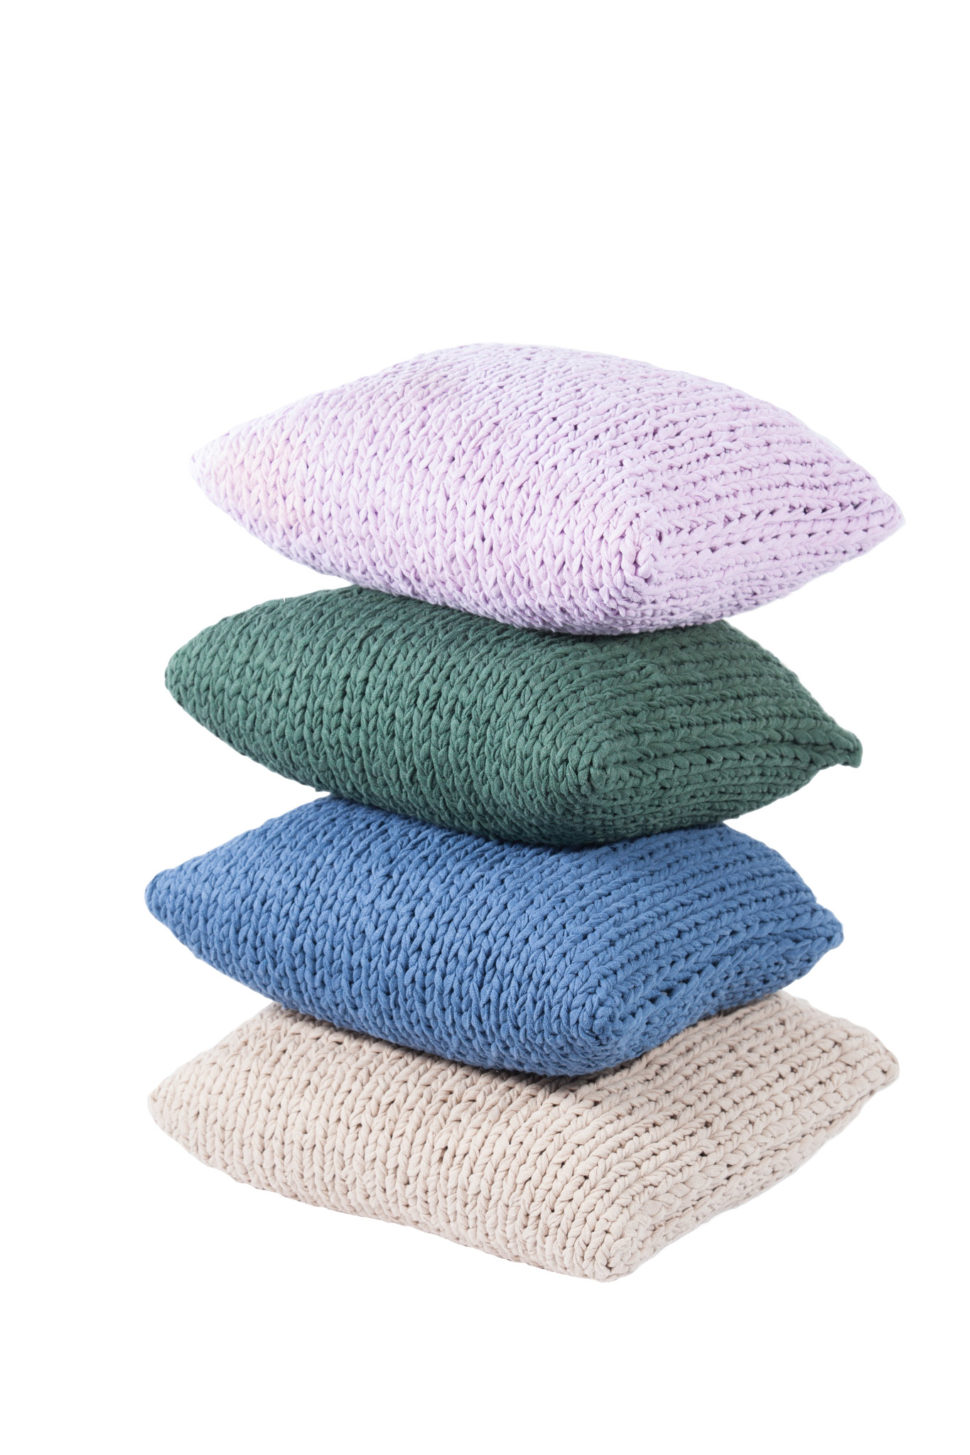 Knitted Pillow Covers Set 2